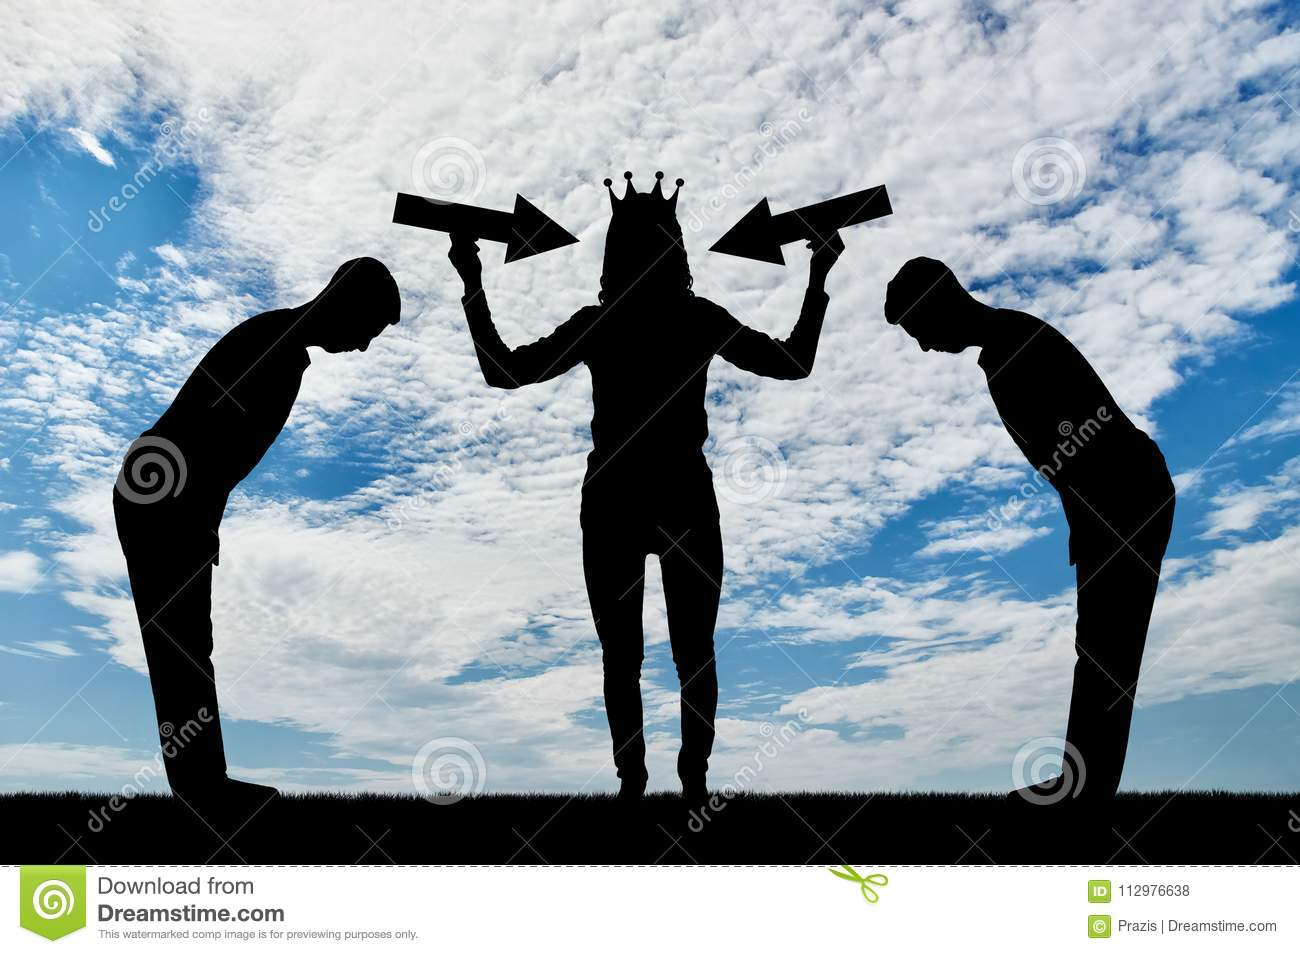 Silhouette of a selfish woman with a crown on her head trying to attract attention